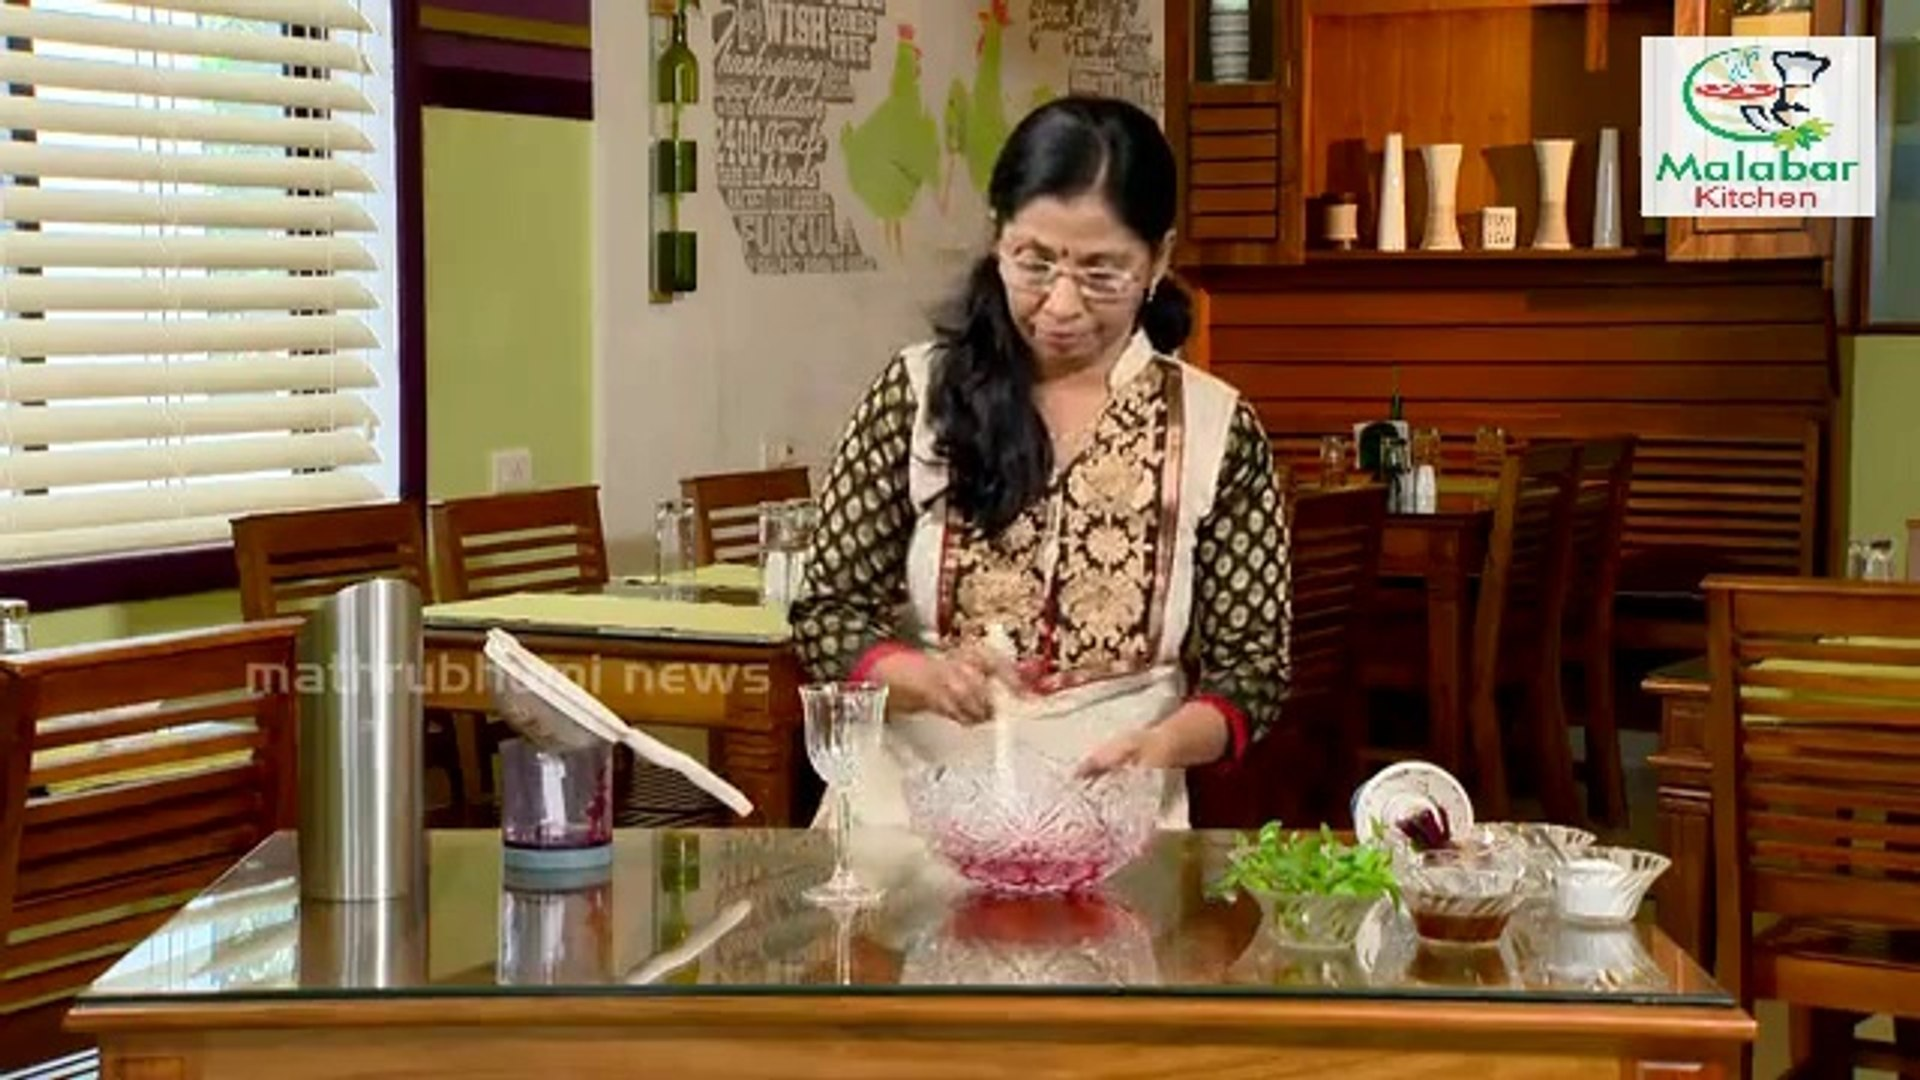 Cool beet - Malayalam Recipe - Malabar Kitchen